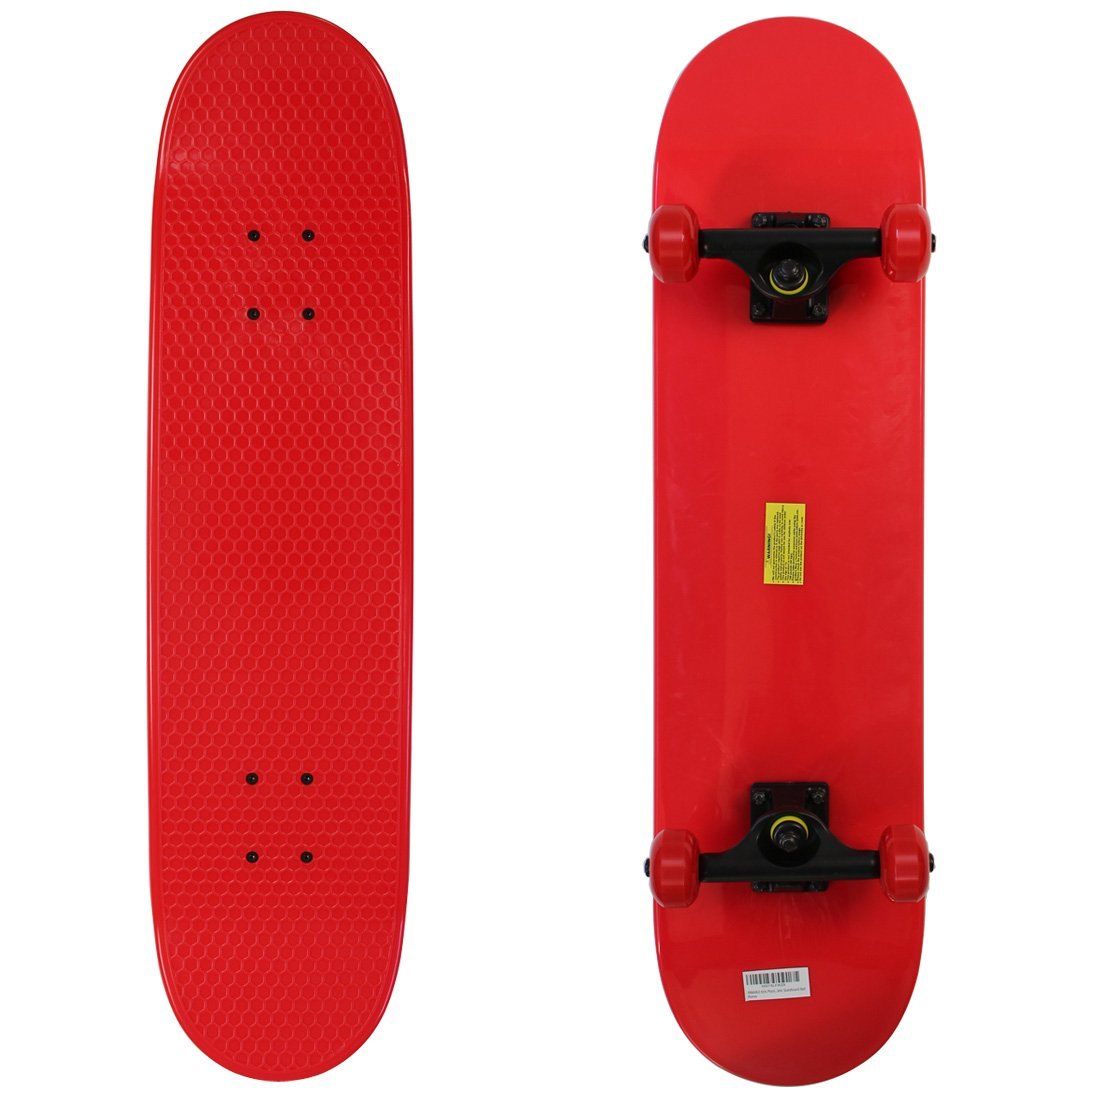 RIMABLE Kids Plastic Complete Skateboard Red